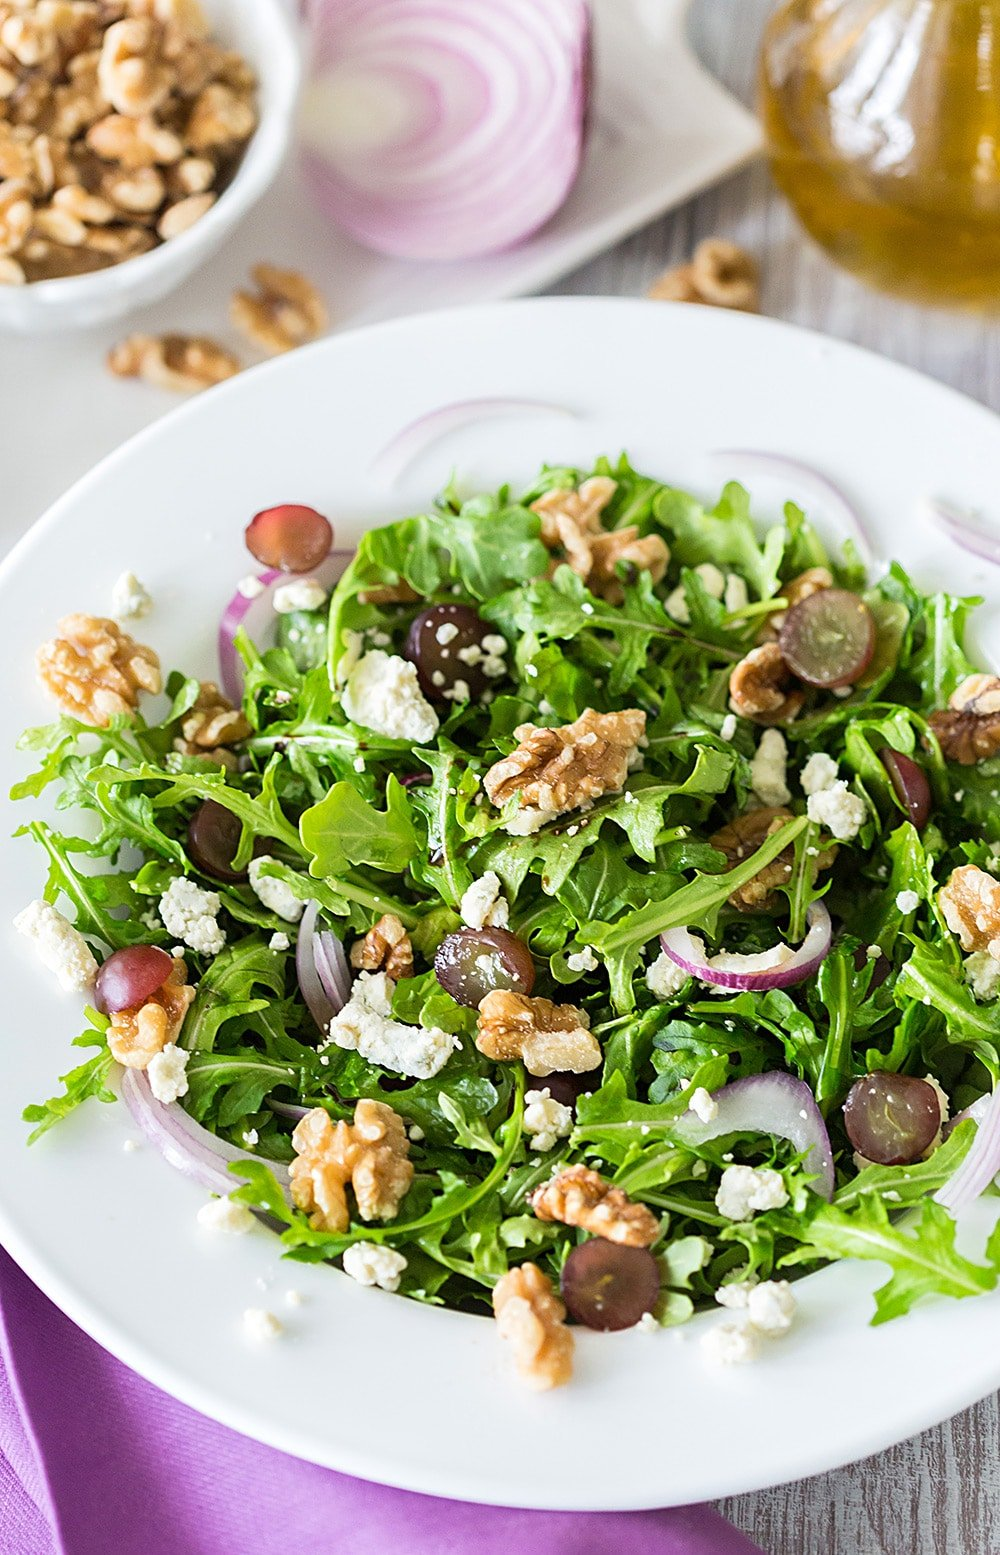 Arugula Salad with Fig Balsamic, Walnuts, and Blue Cheese Crumbles